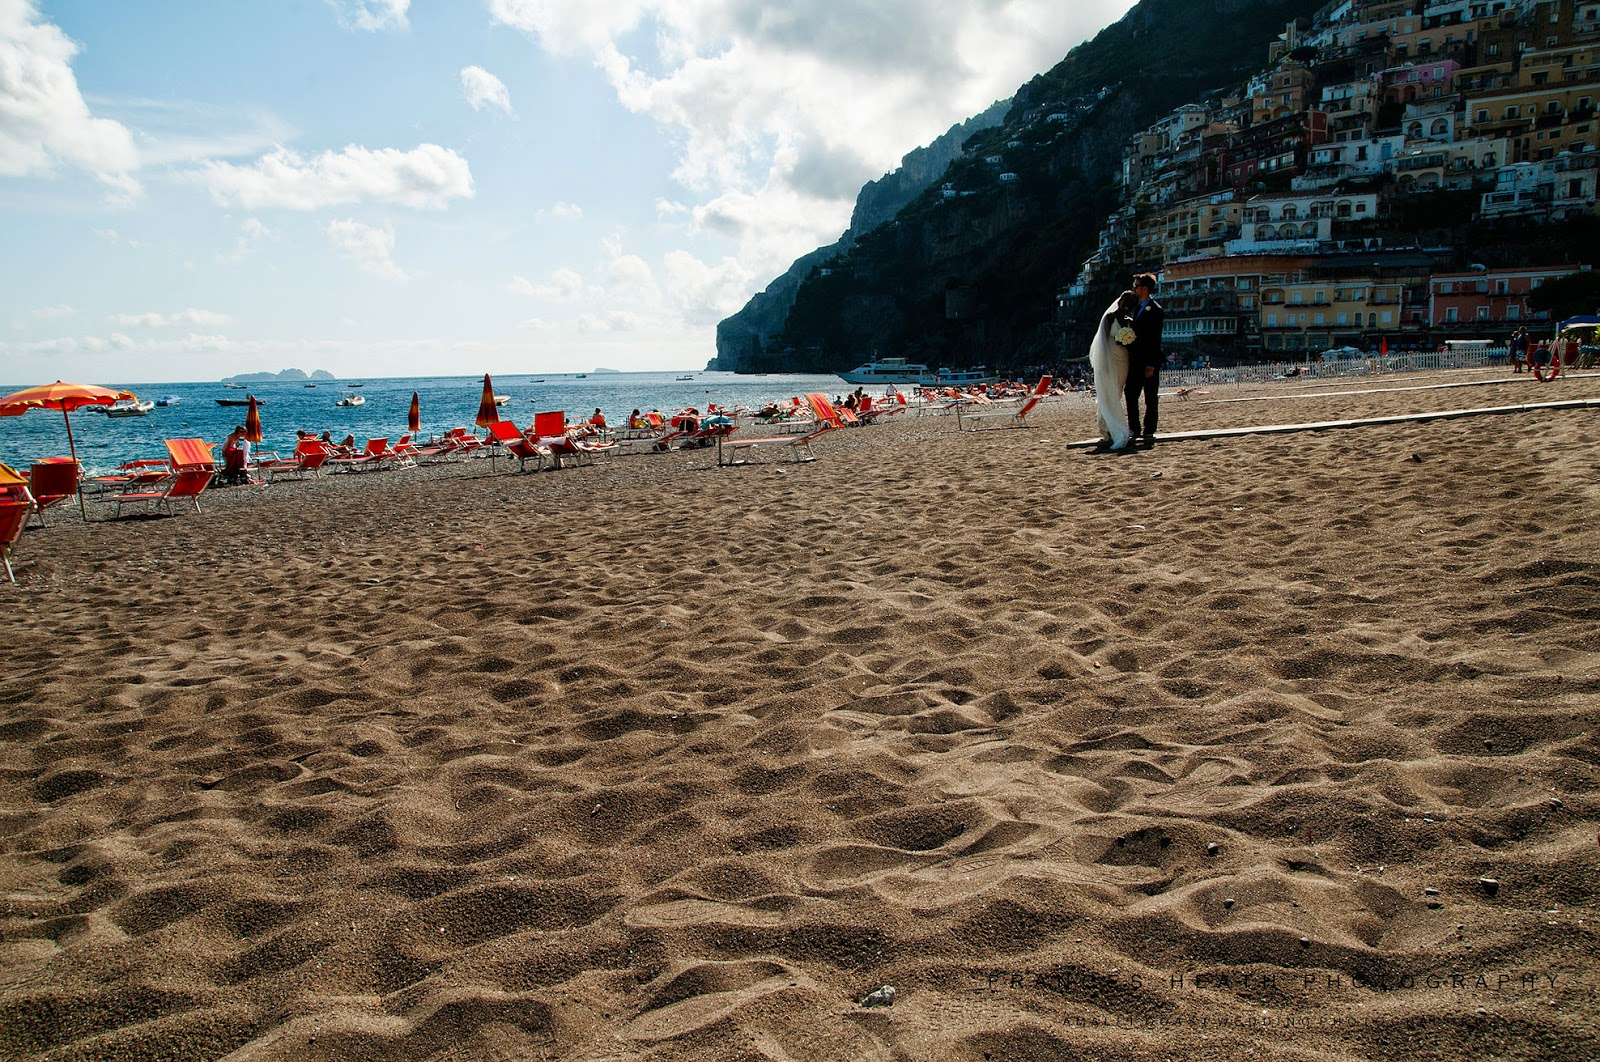 Wedding portrait on Positano beach in Italy